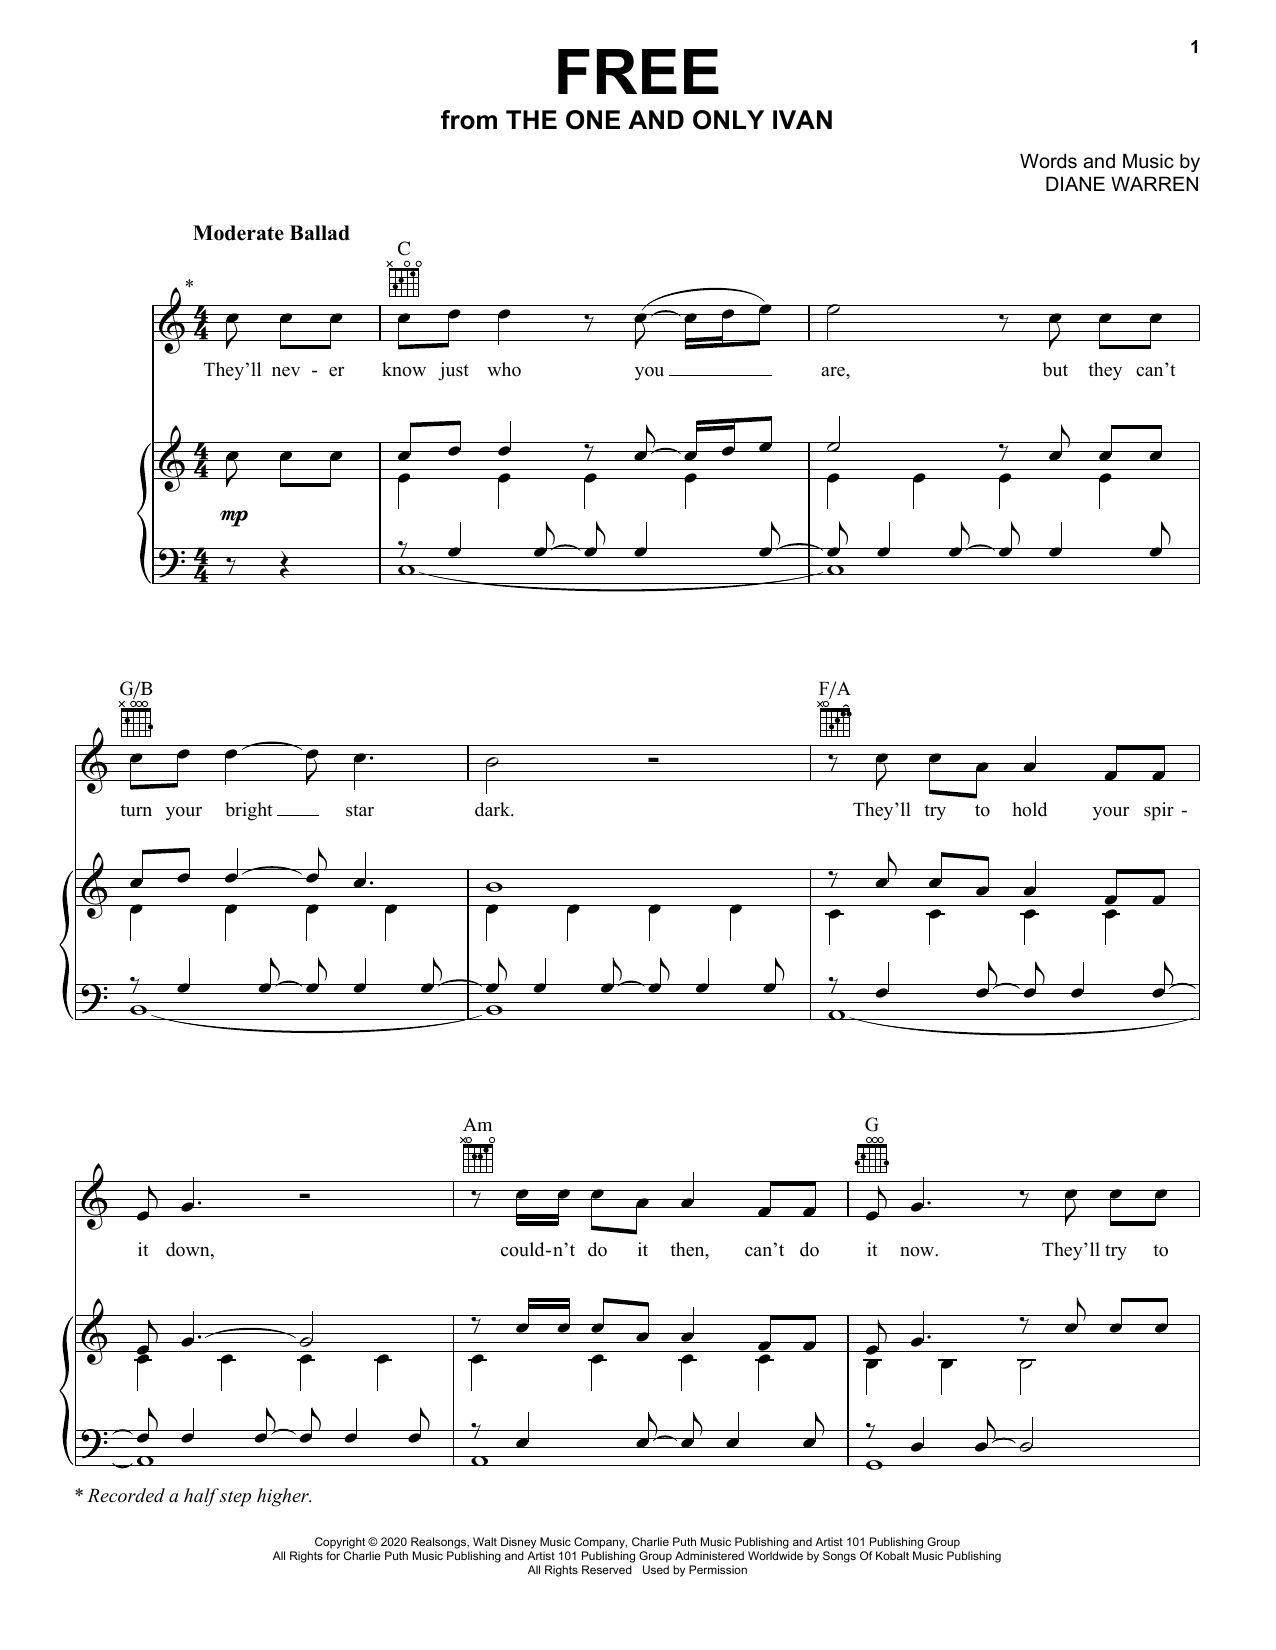 Charlie Puth Free From Disney S The One And Only Ivan Sheet Music Notes Download Pdf Score Printable